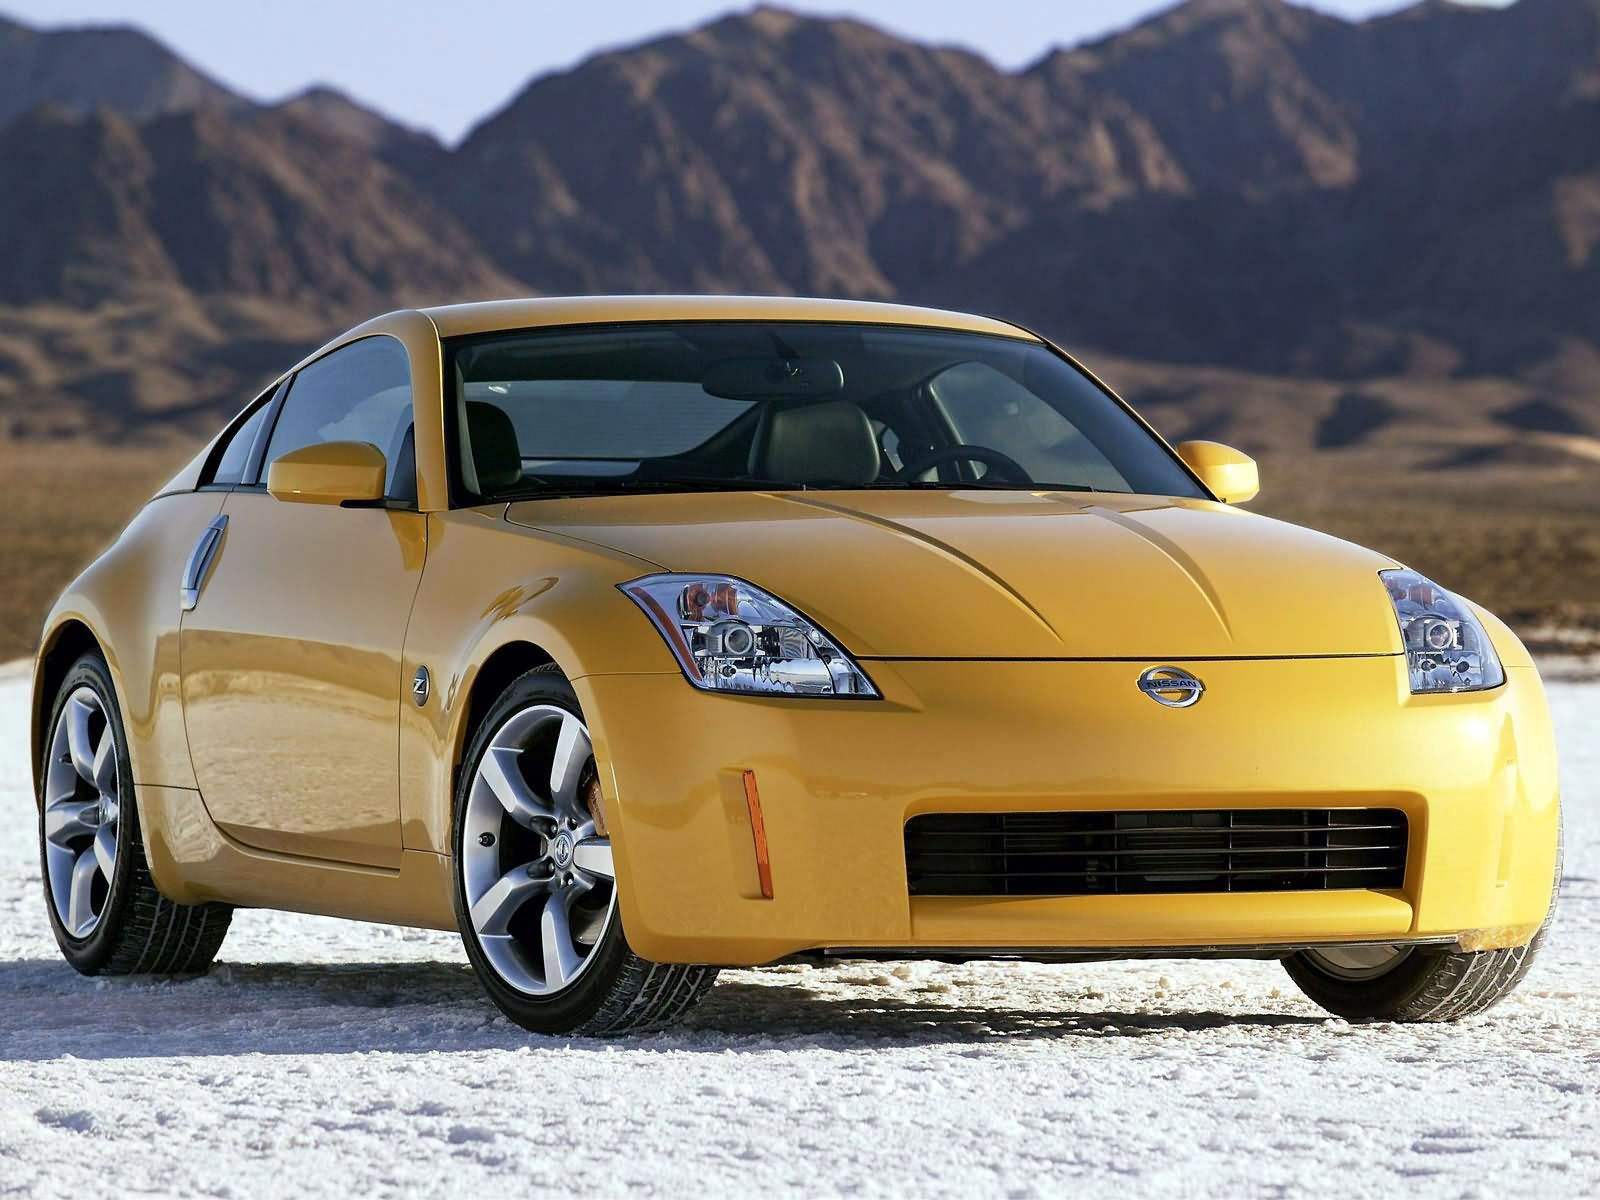 Nissan 350z HD Wallpapers Cars | Nissan | Sports cars for sale